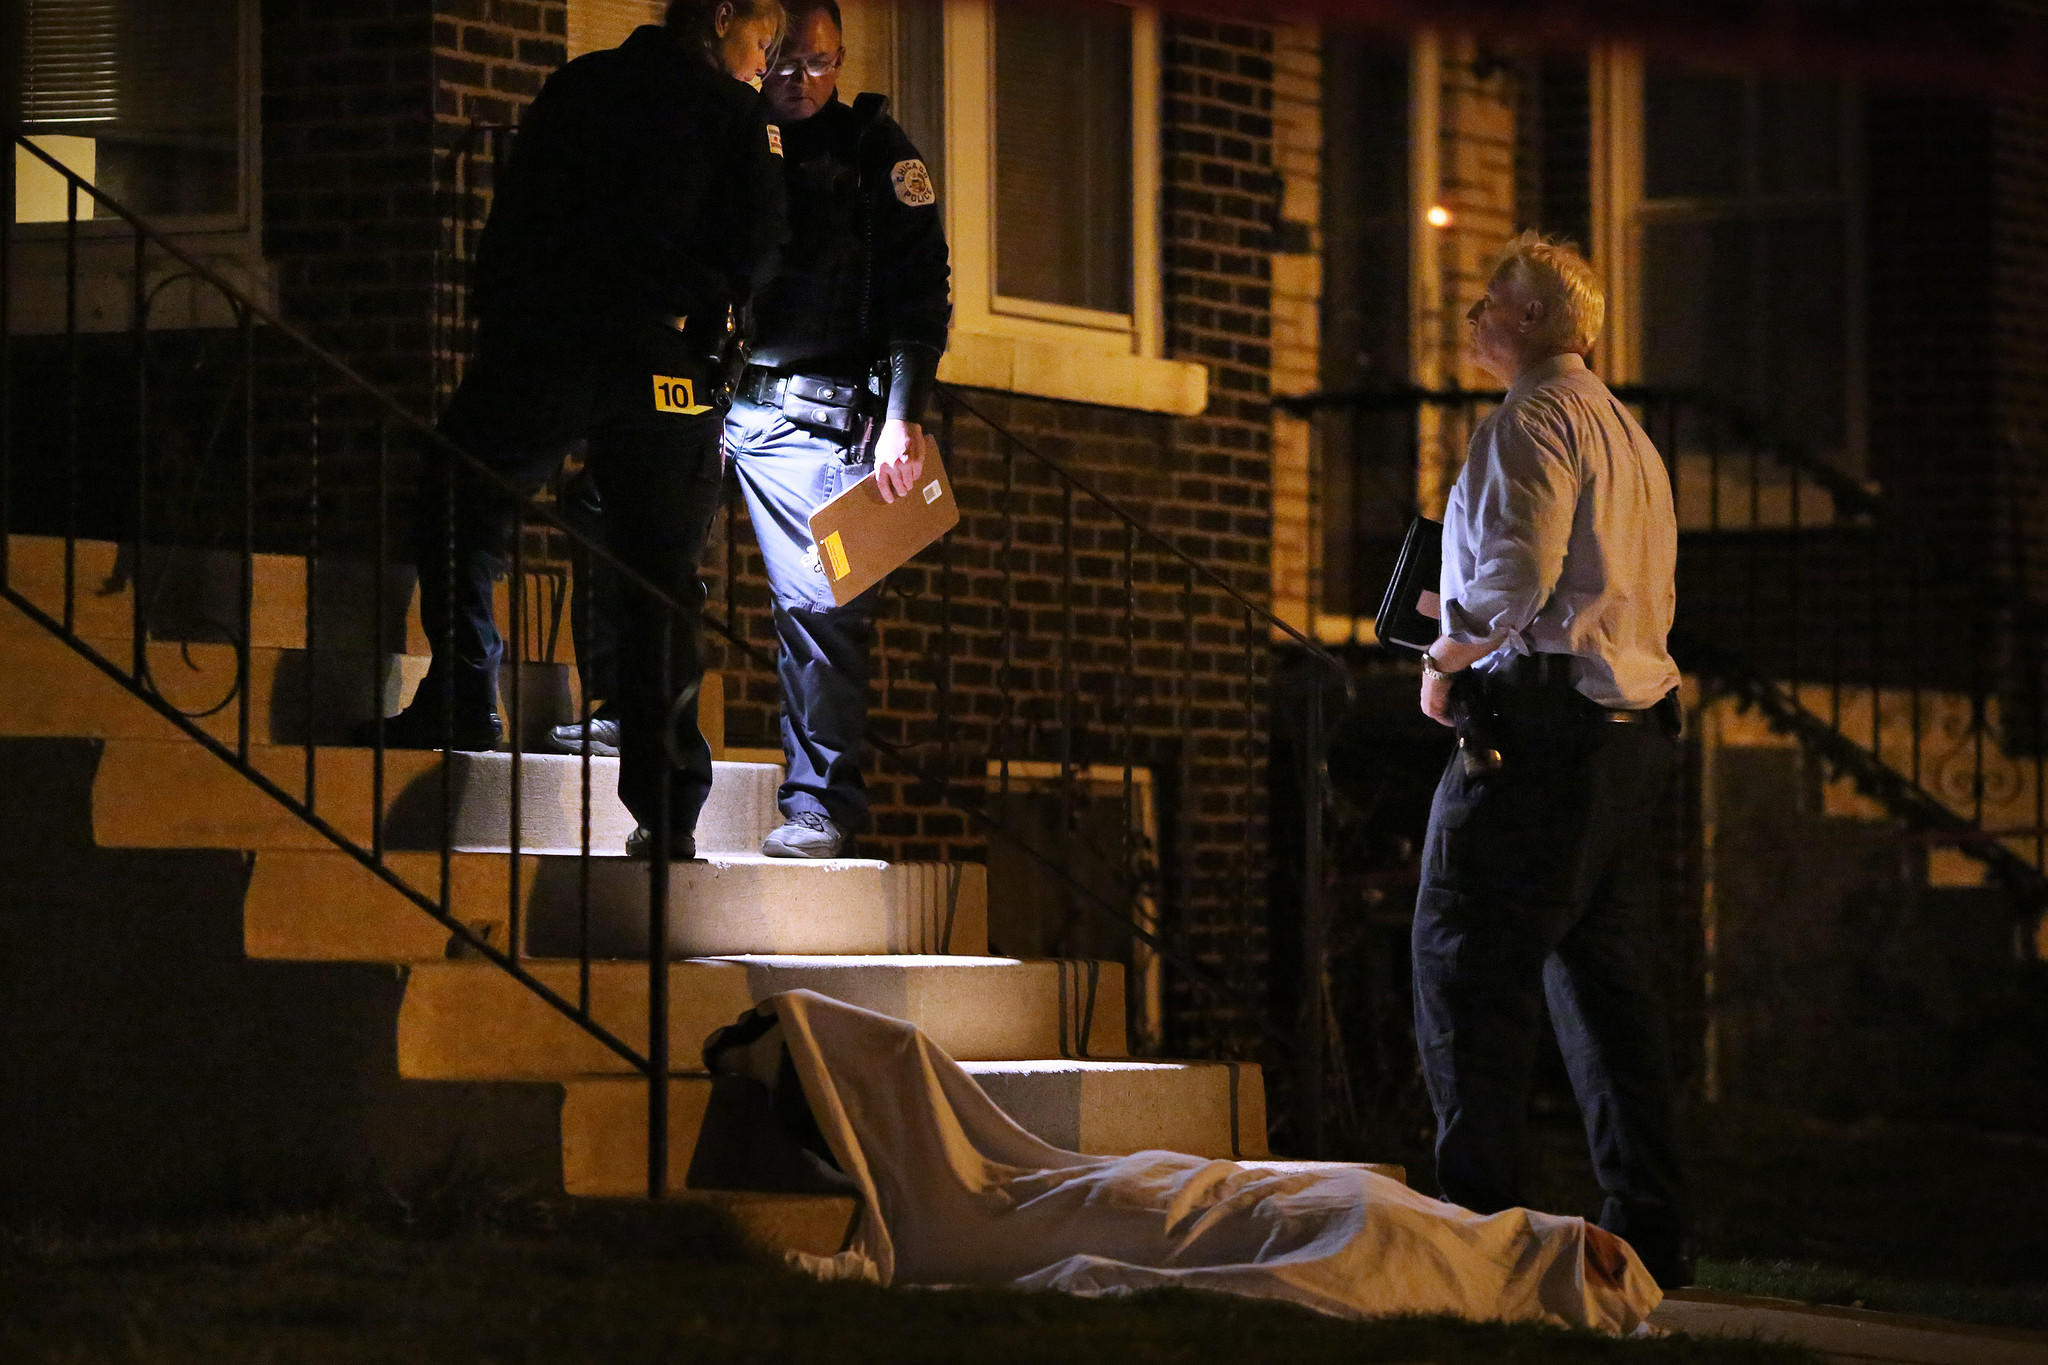 Police confer near the scene after a man was shot and killed Sunday, April 13, 2014 in the 3000 block of West 53rd Place in Chicago.